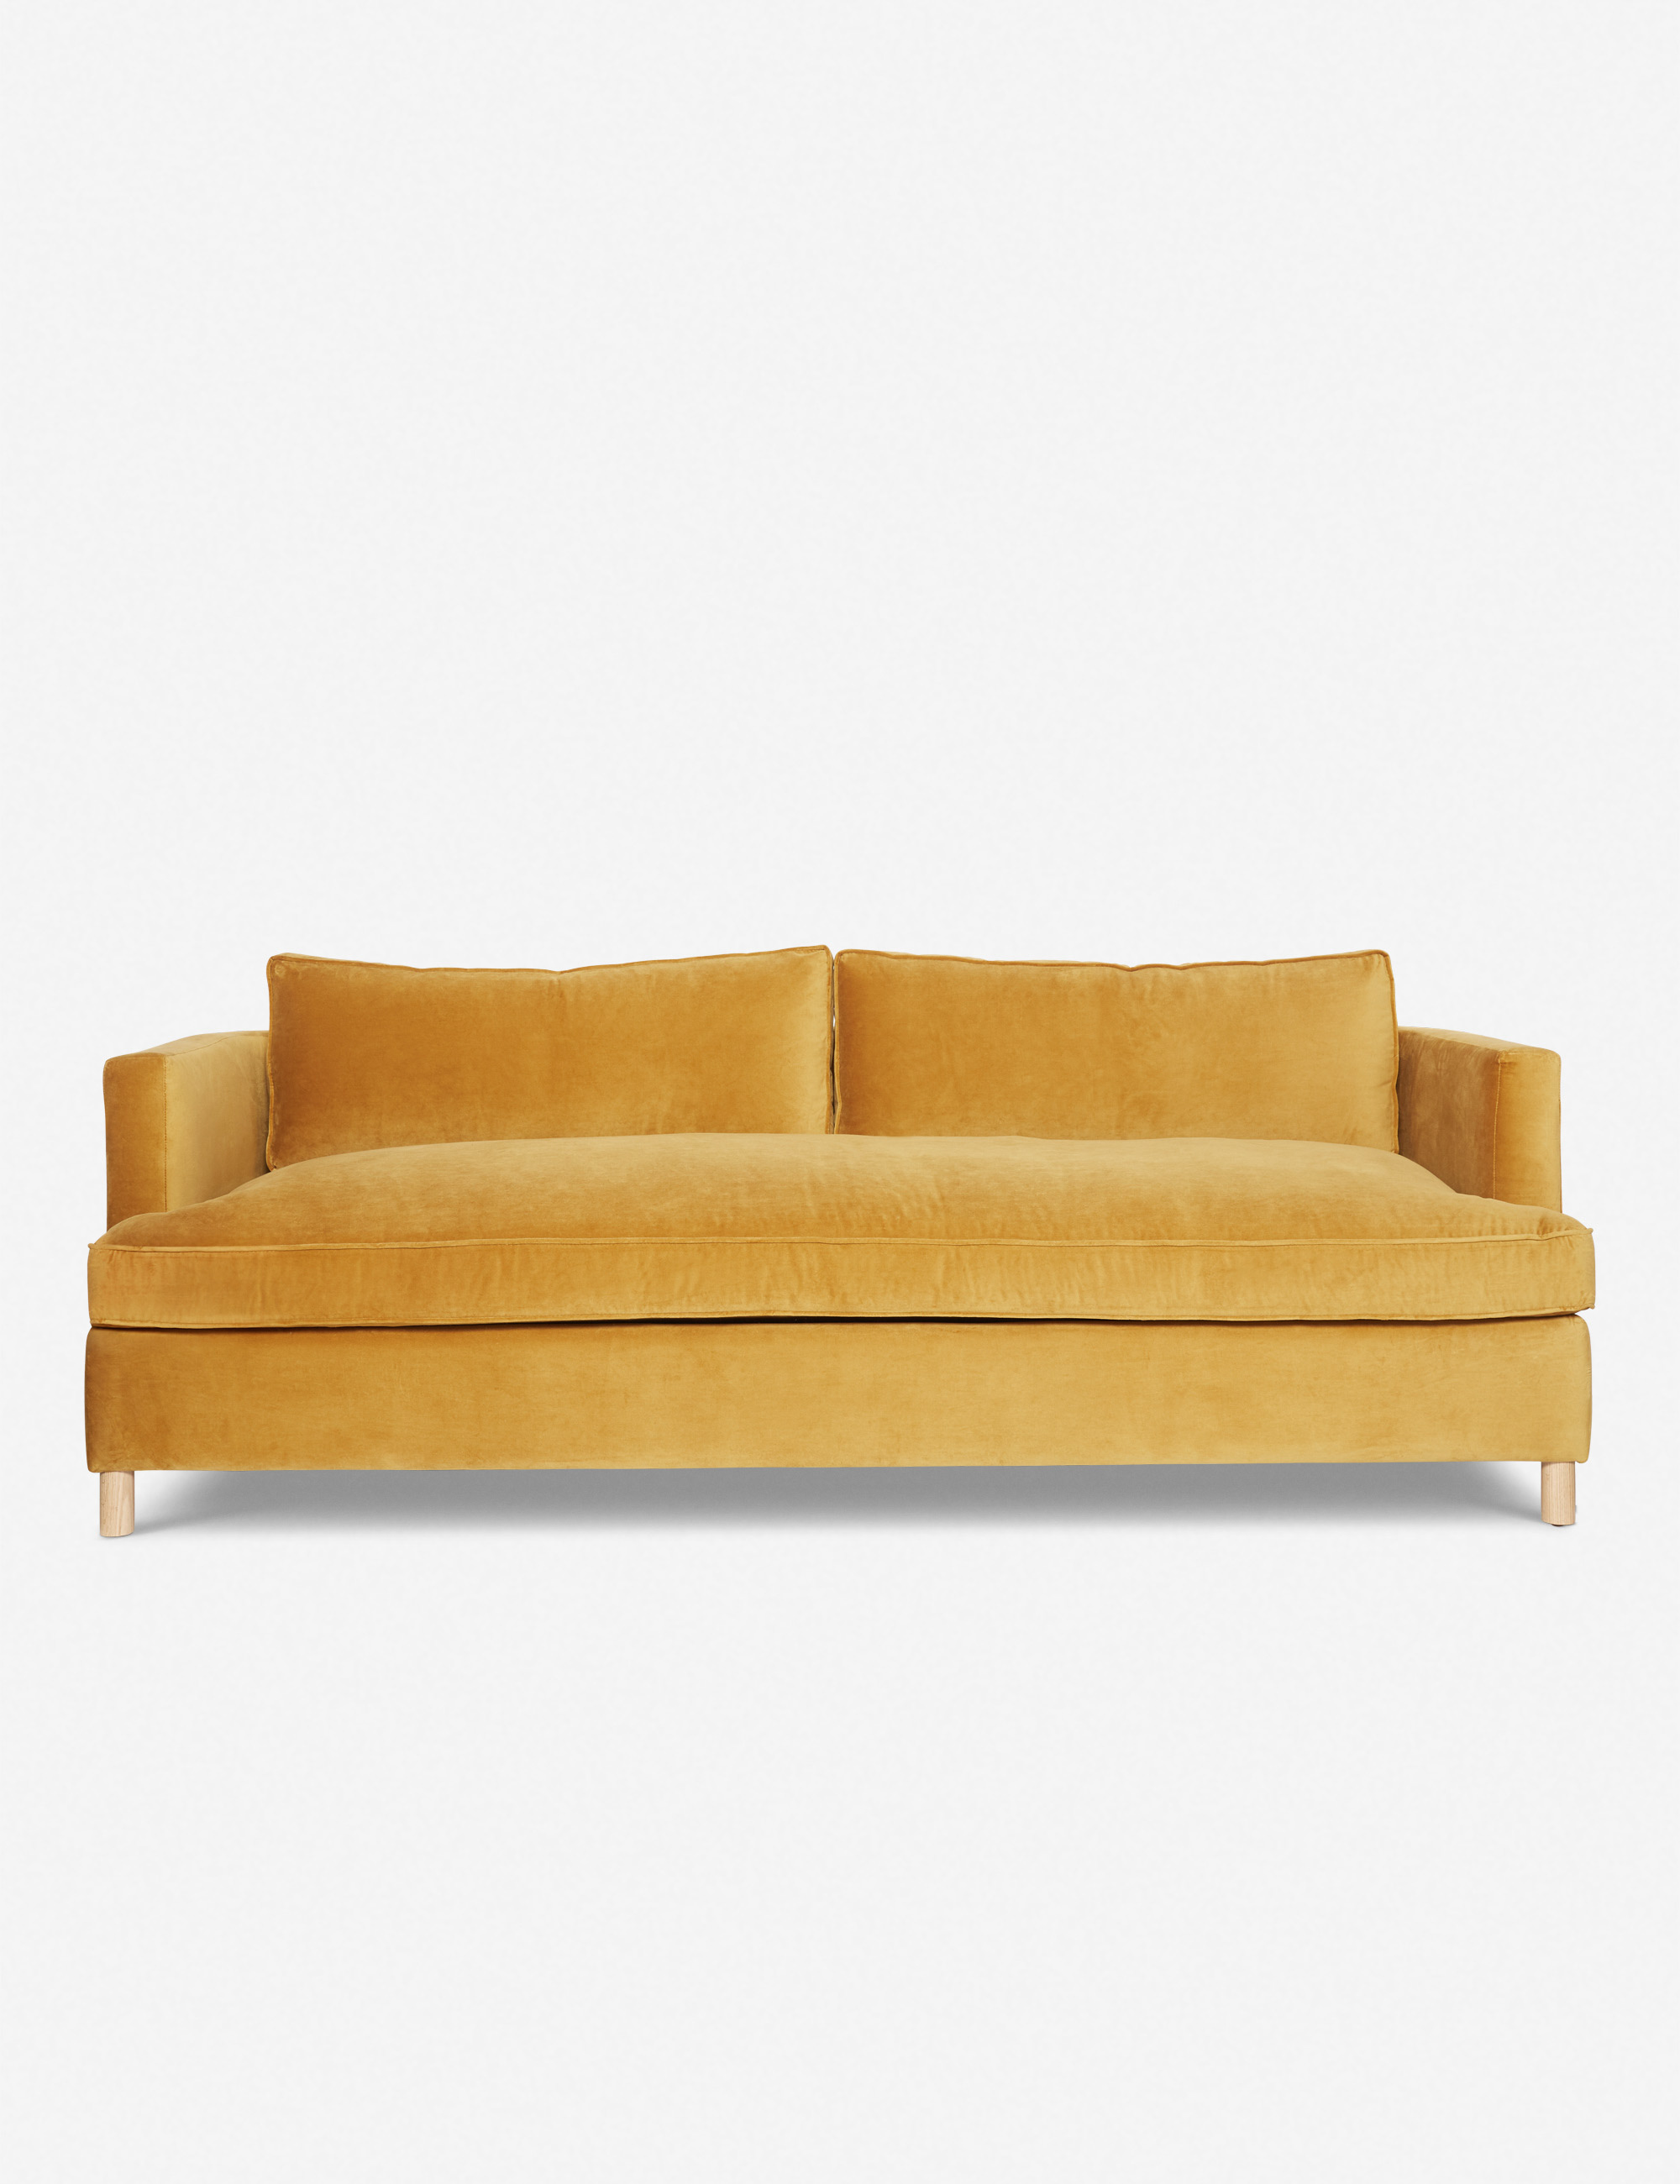 GINNY_MACDONALD_BELMONT-SOFA-golden-rod-6